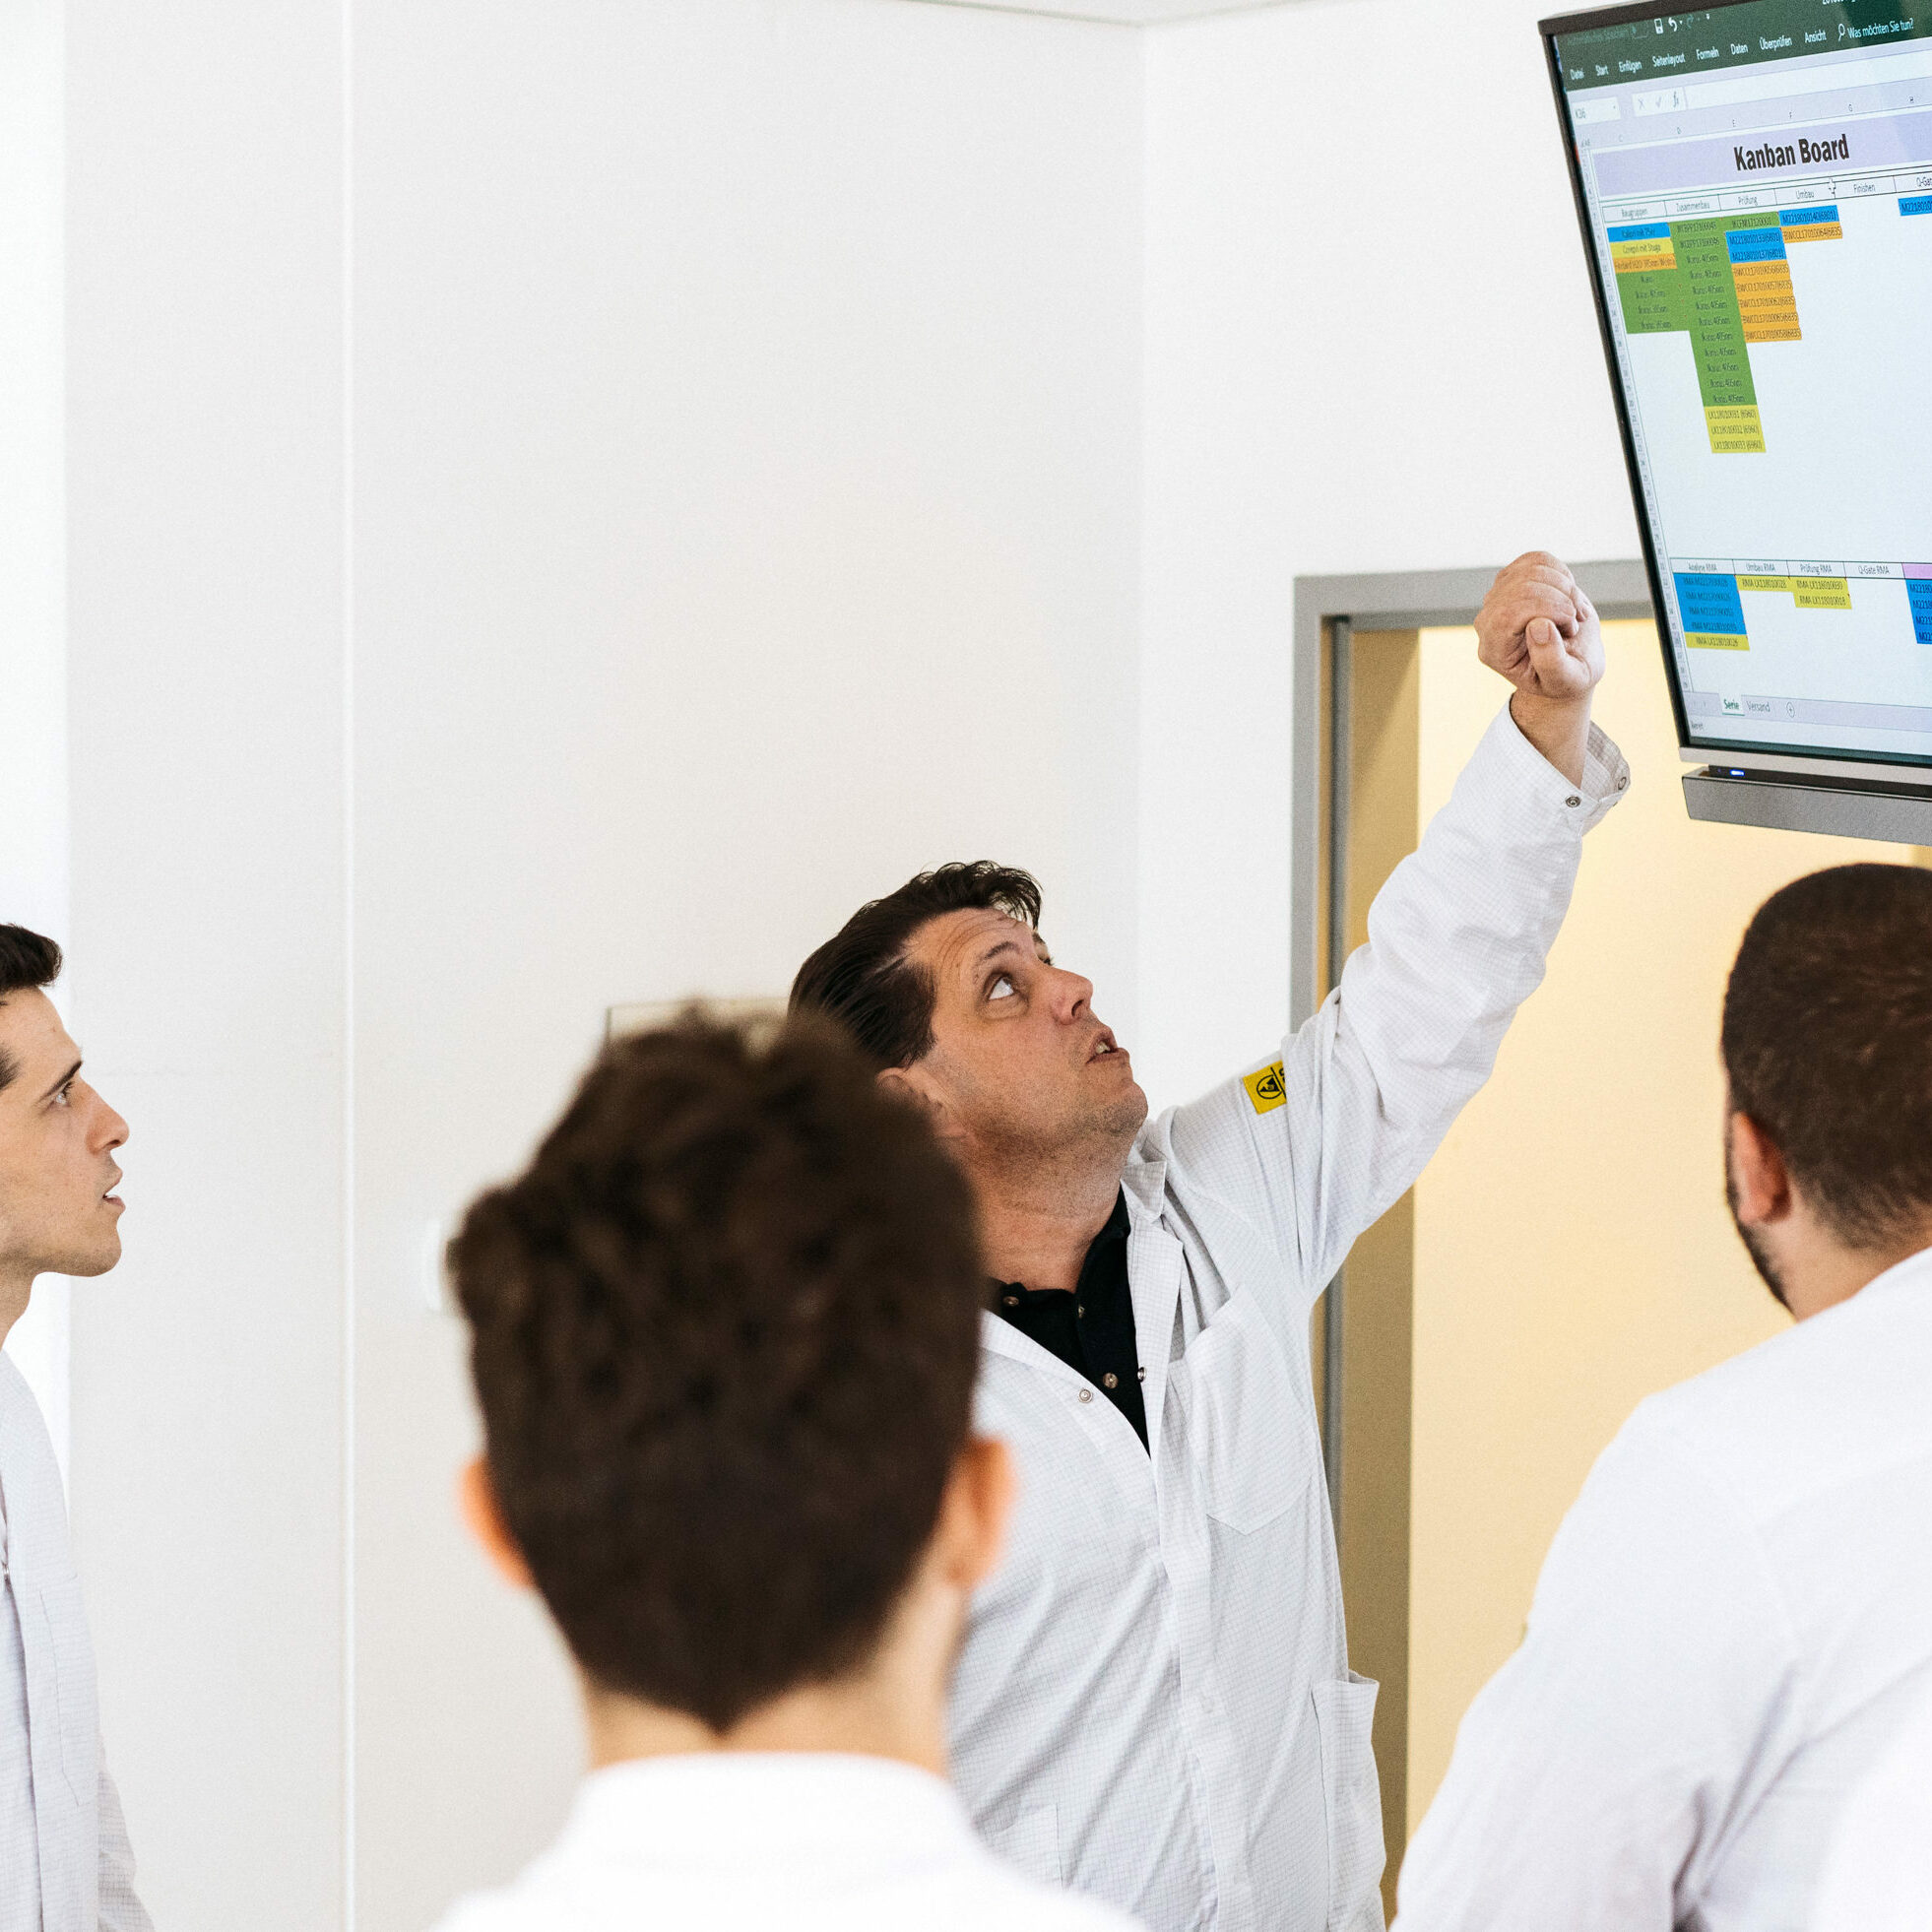 Stand-up meeting in front of an electronic Kanban board